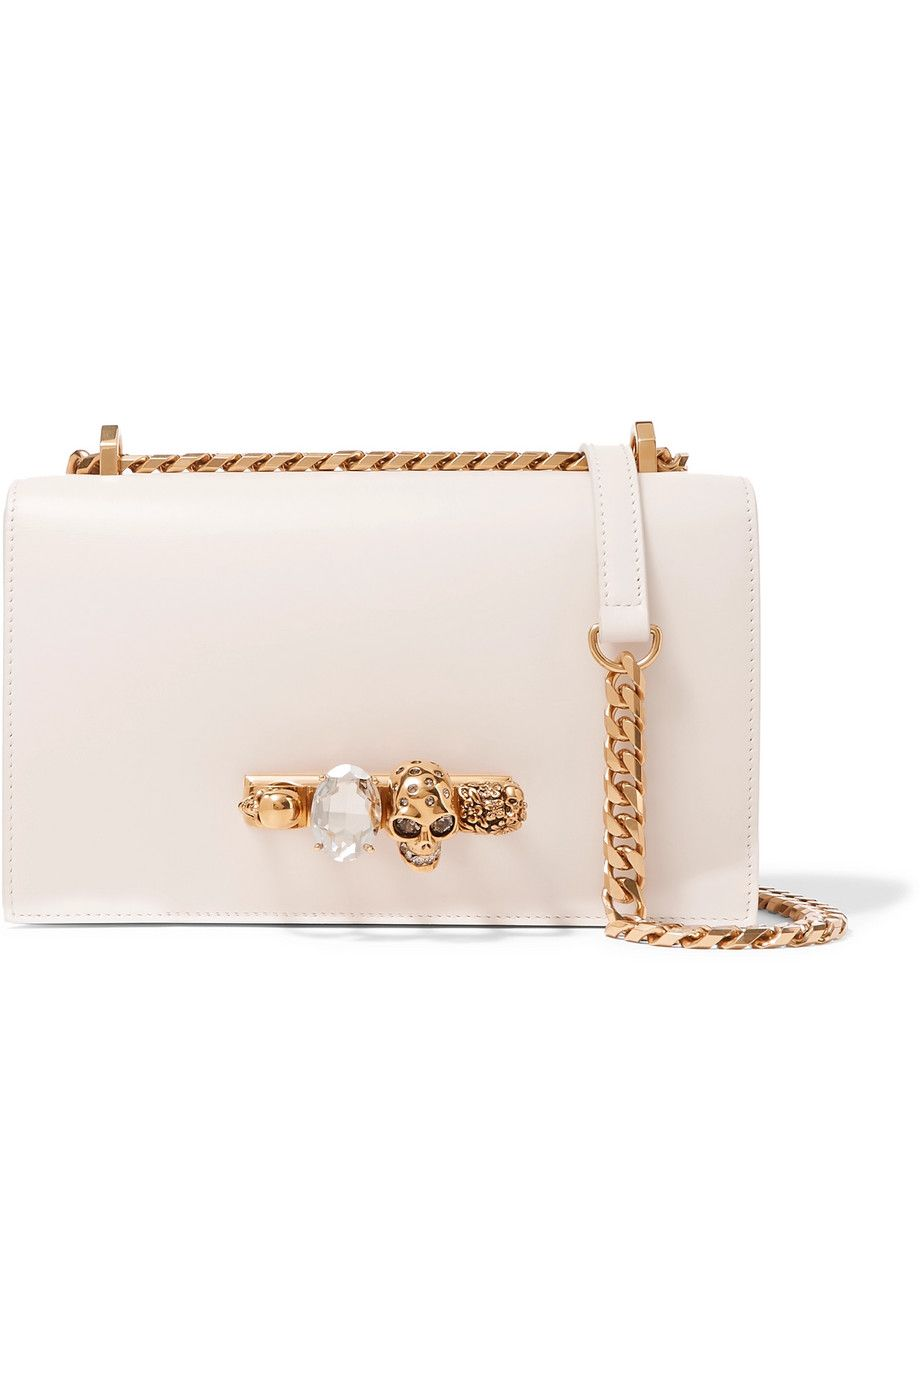 Best Spring 2019 Bags - Spring 2019 Bags to Buy Now 6329ccda9106e